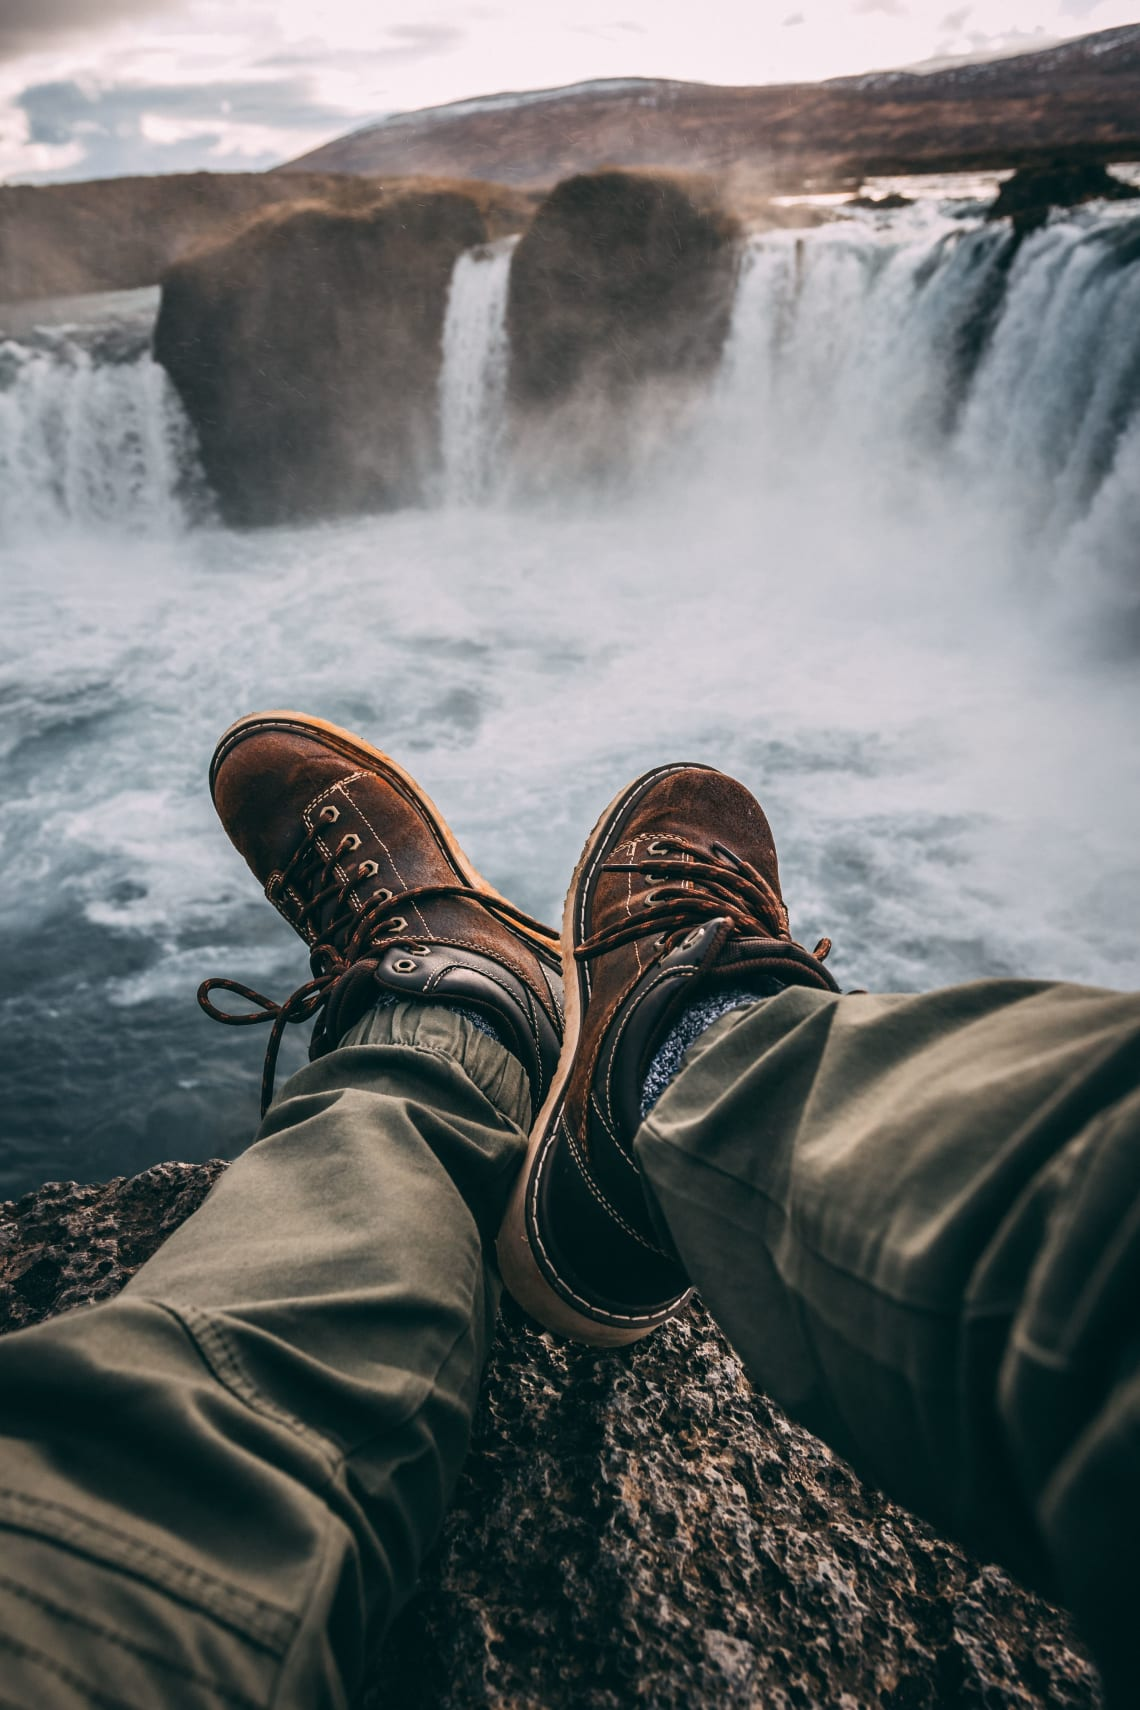 Hiker enjoying a rest stop with waterfall views